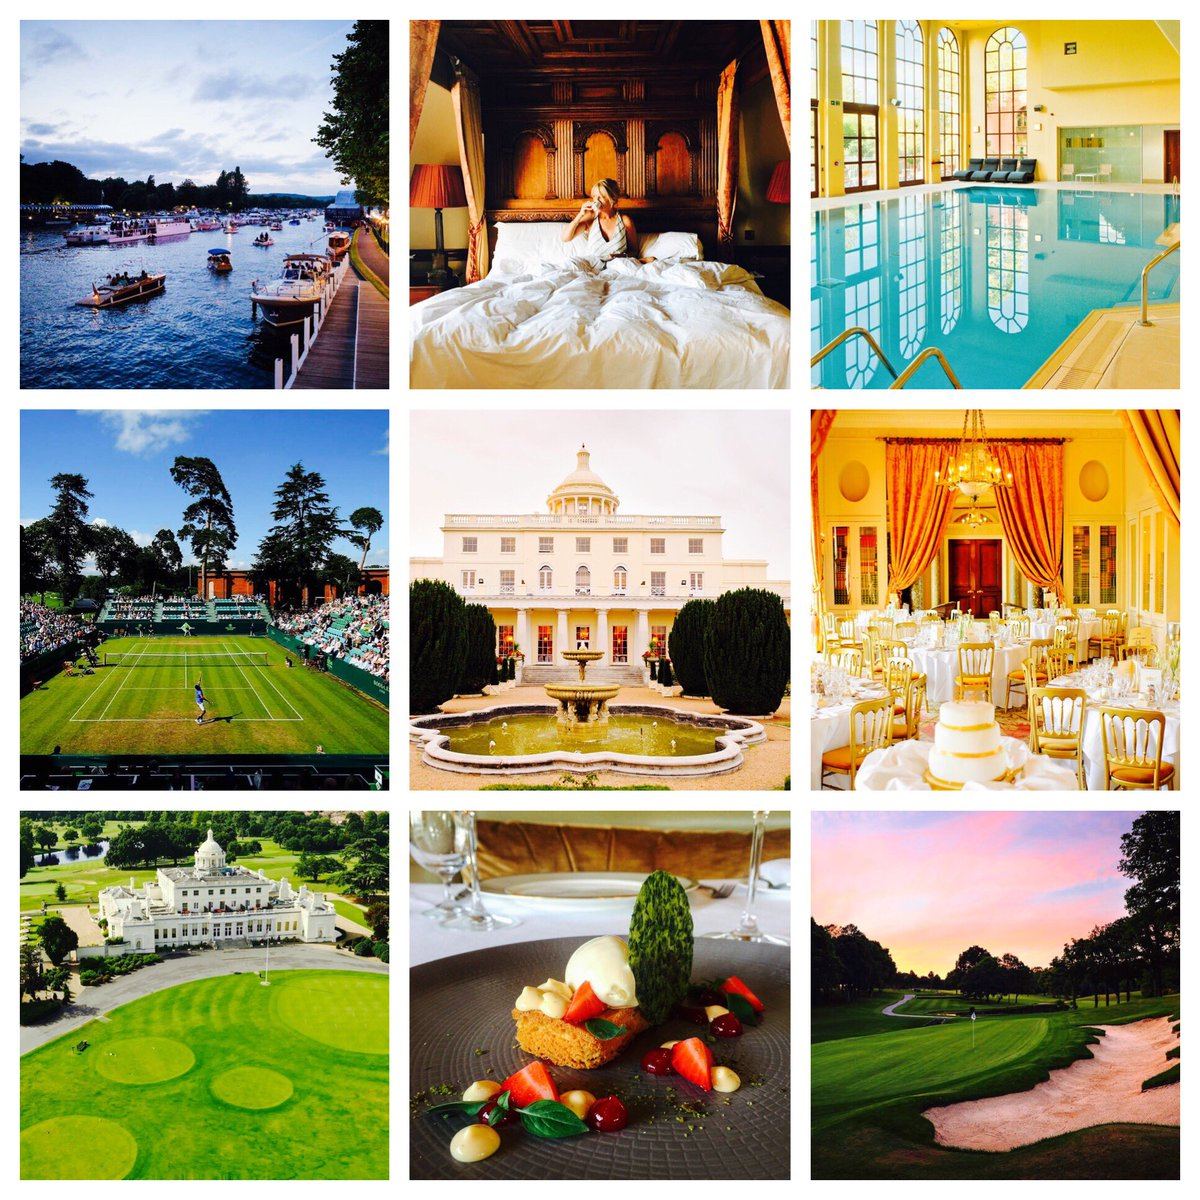 1 week today #Introbiz Launch #VIP Luxury Event Top 5 Resort in UK @StokePark Friday 18th August with @crowandjester  http://www. introbiz.co.uk/cardiff-busine ss-networking-events-wales/diary/ &nbsp; … <br>http://pic.twitter.com/ELXEKBWNzj